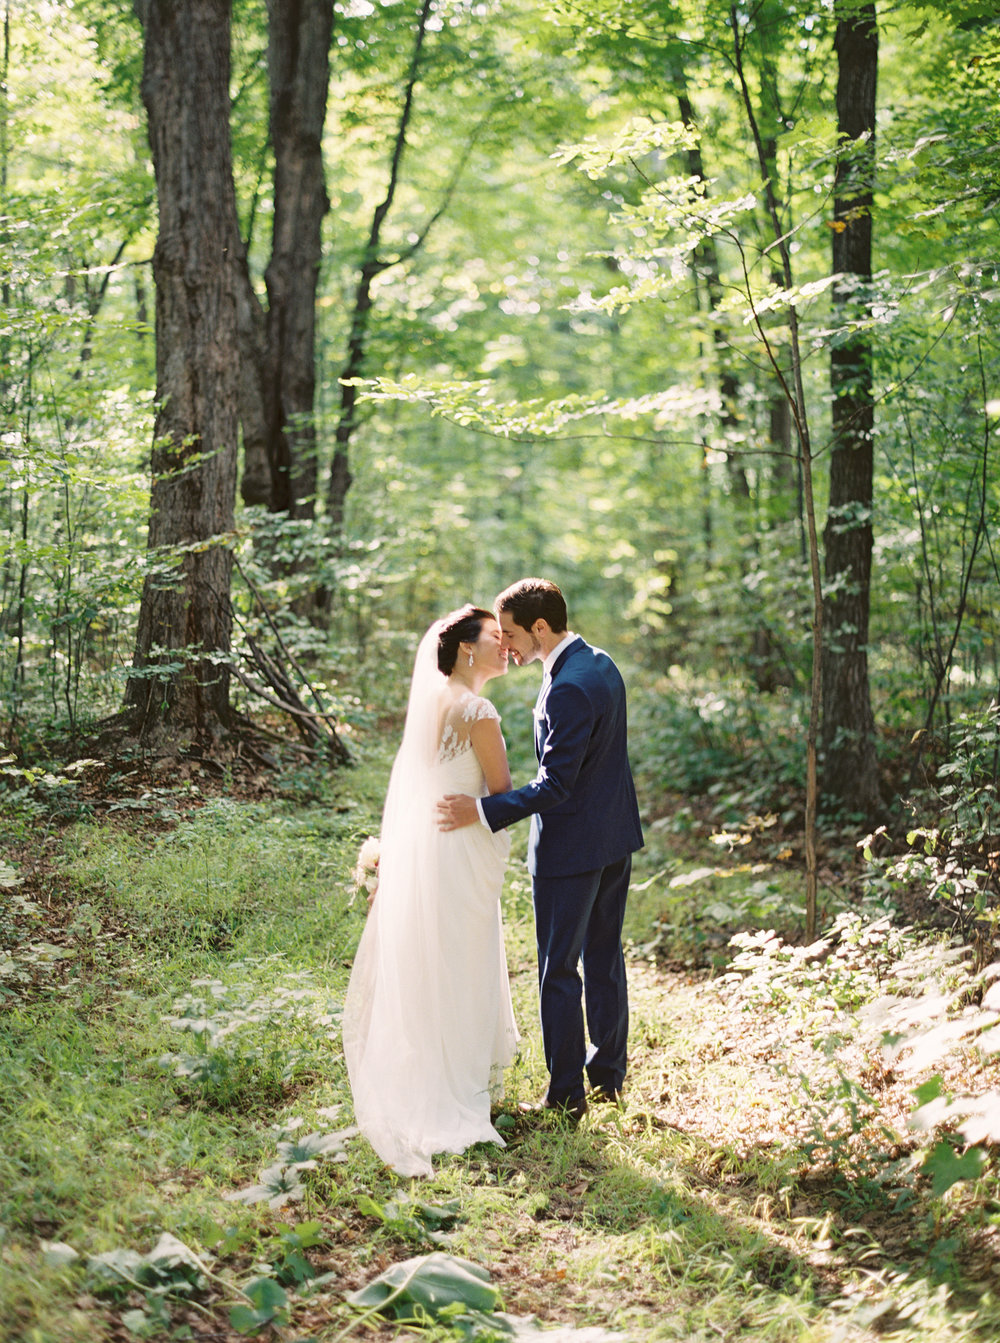 0068-WhenHeFoundHer-SugarShack-QuebecWedding-MagnoliaRouge.jpg